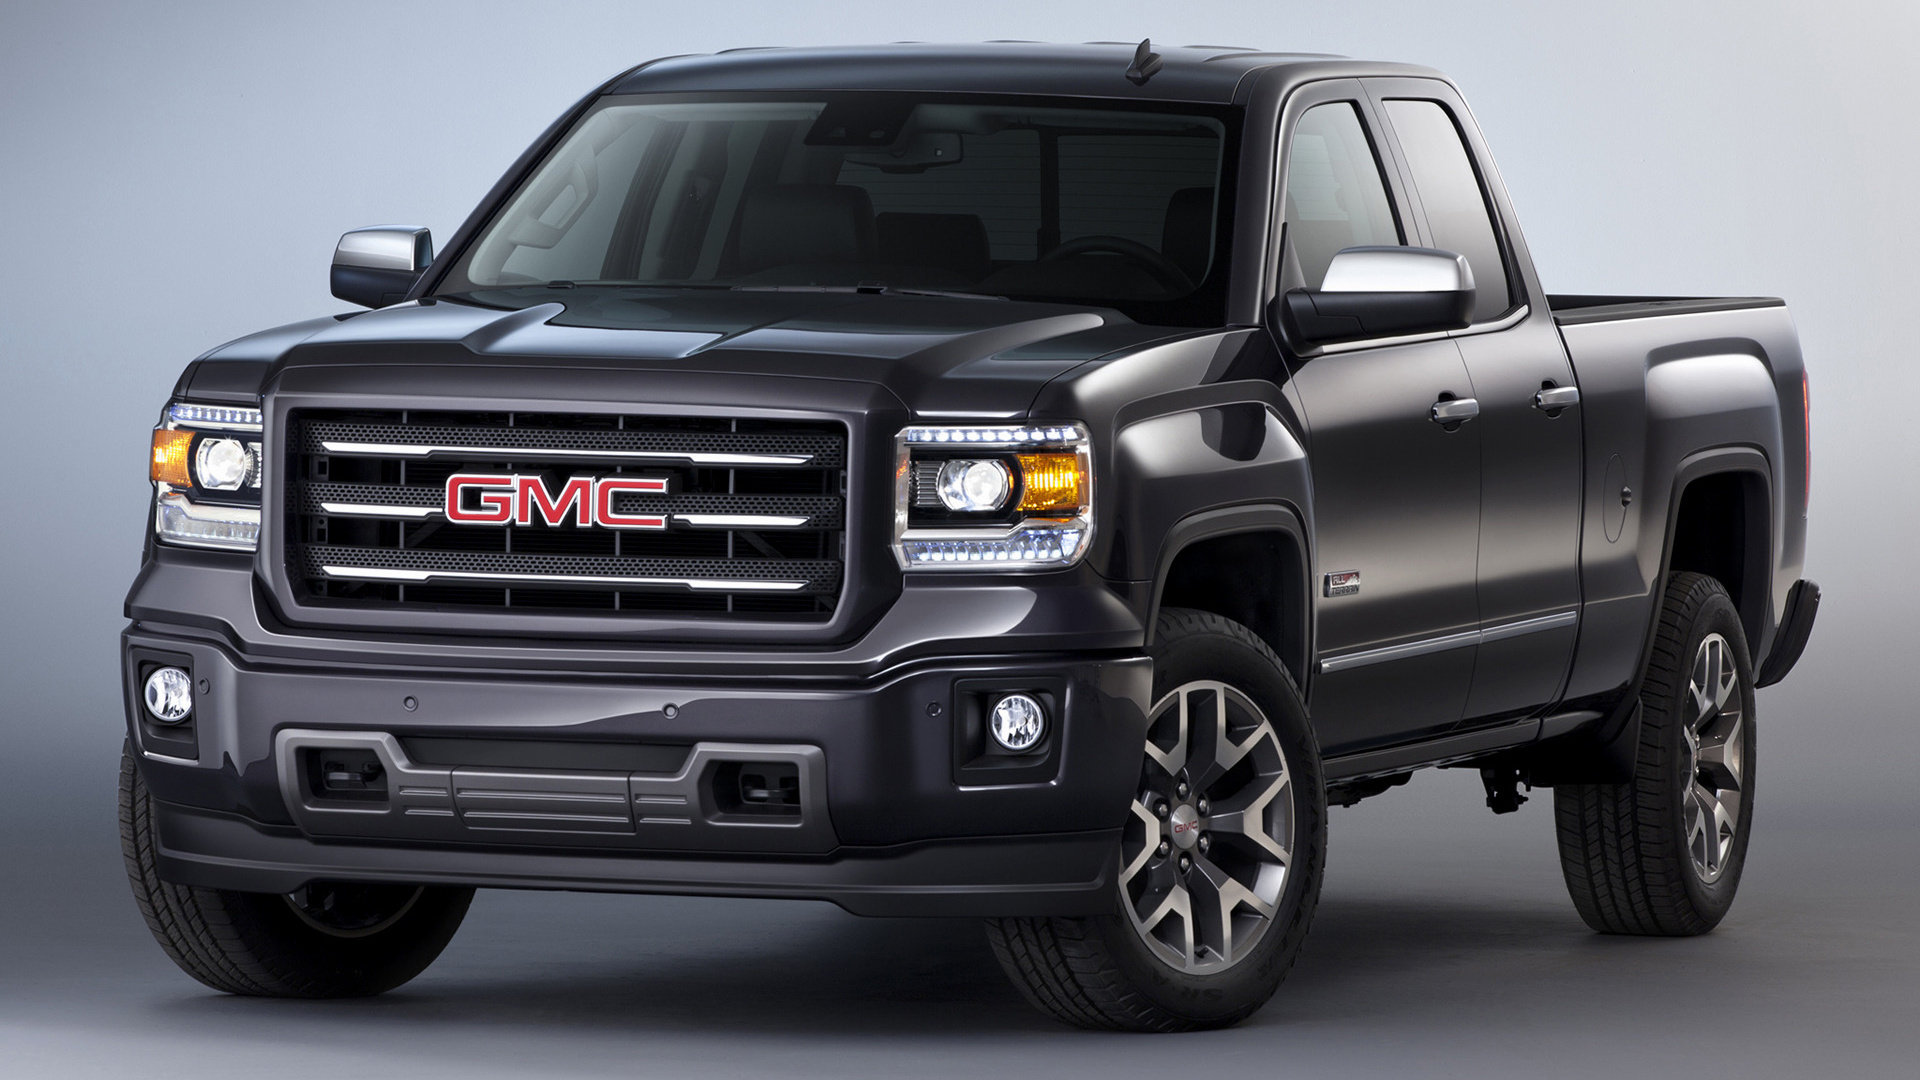 2014 Gmc Sierra All Terrain 1500 Double Cab Wallpapers